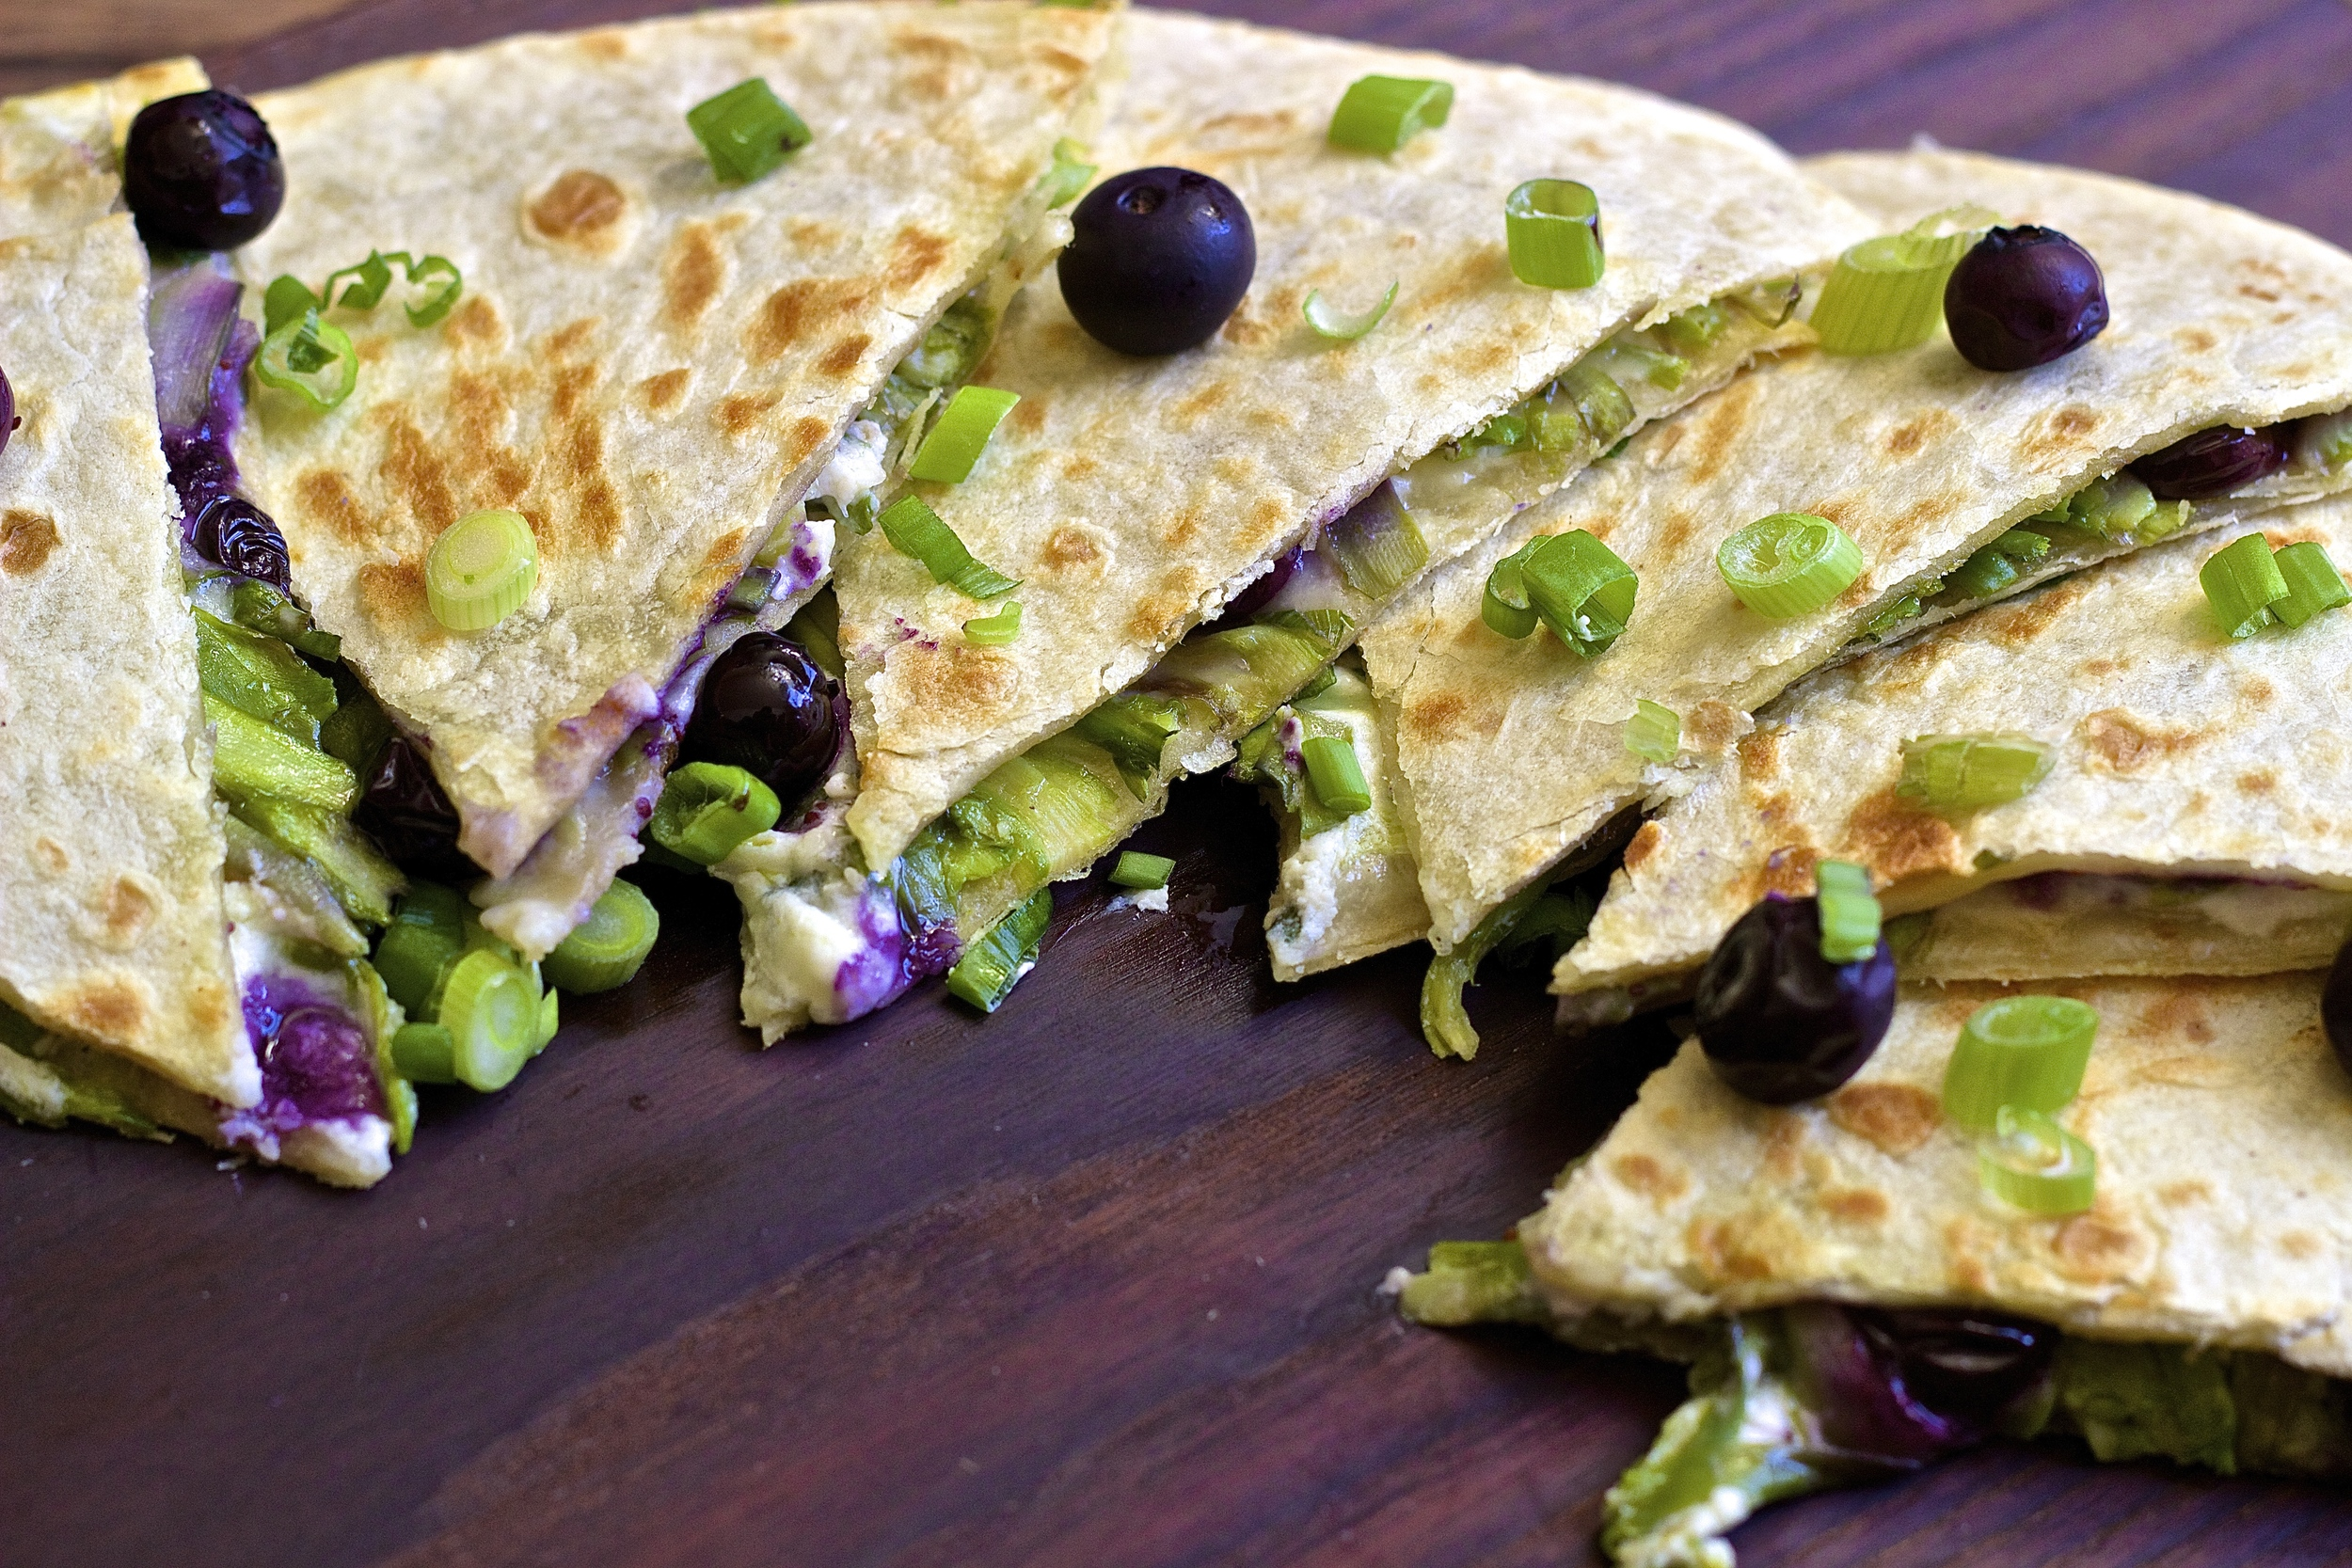 Shaved Asparagus & Roasted Blueberry Quesadillas with Herbed Yogurt | Kneading Home